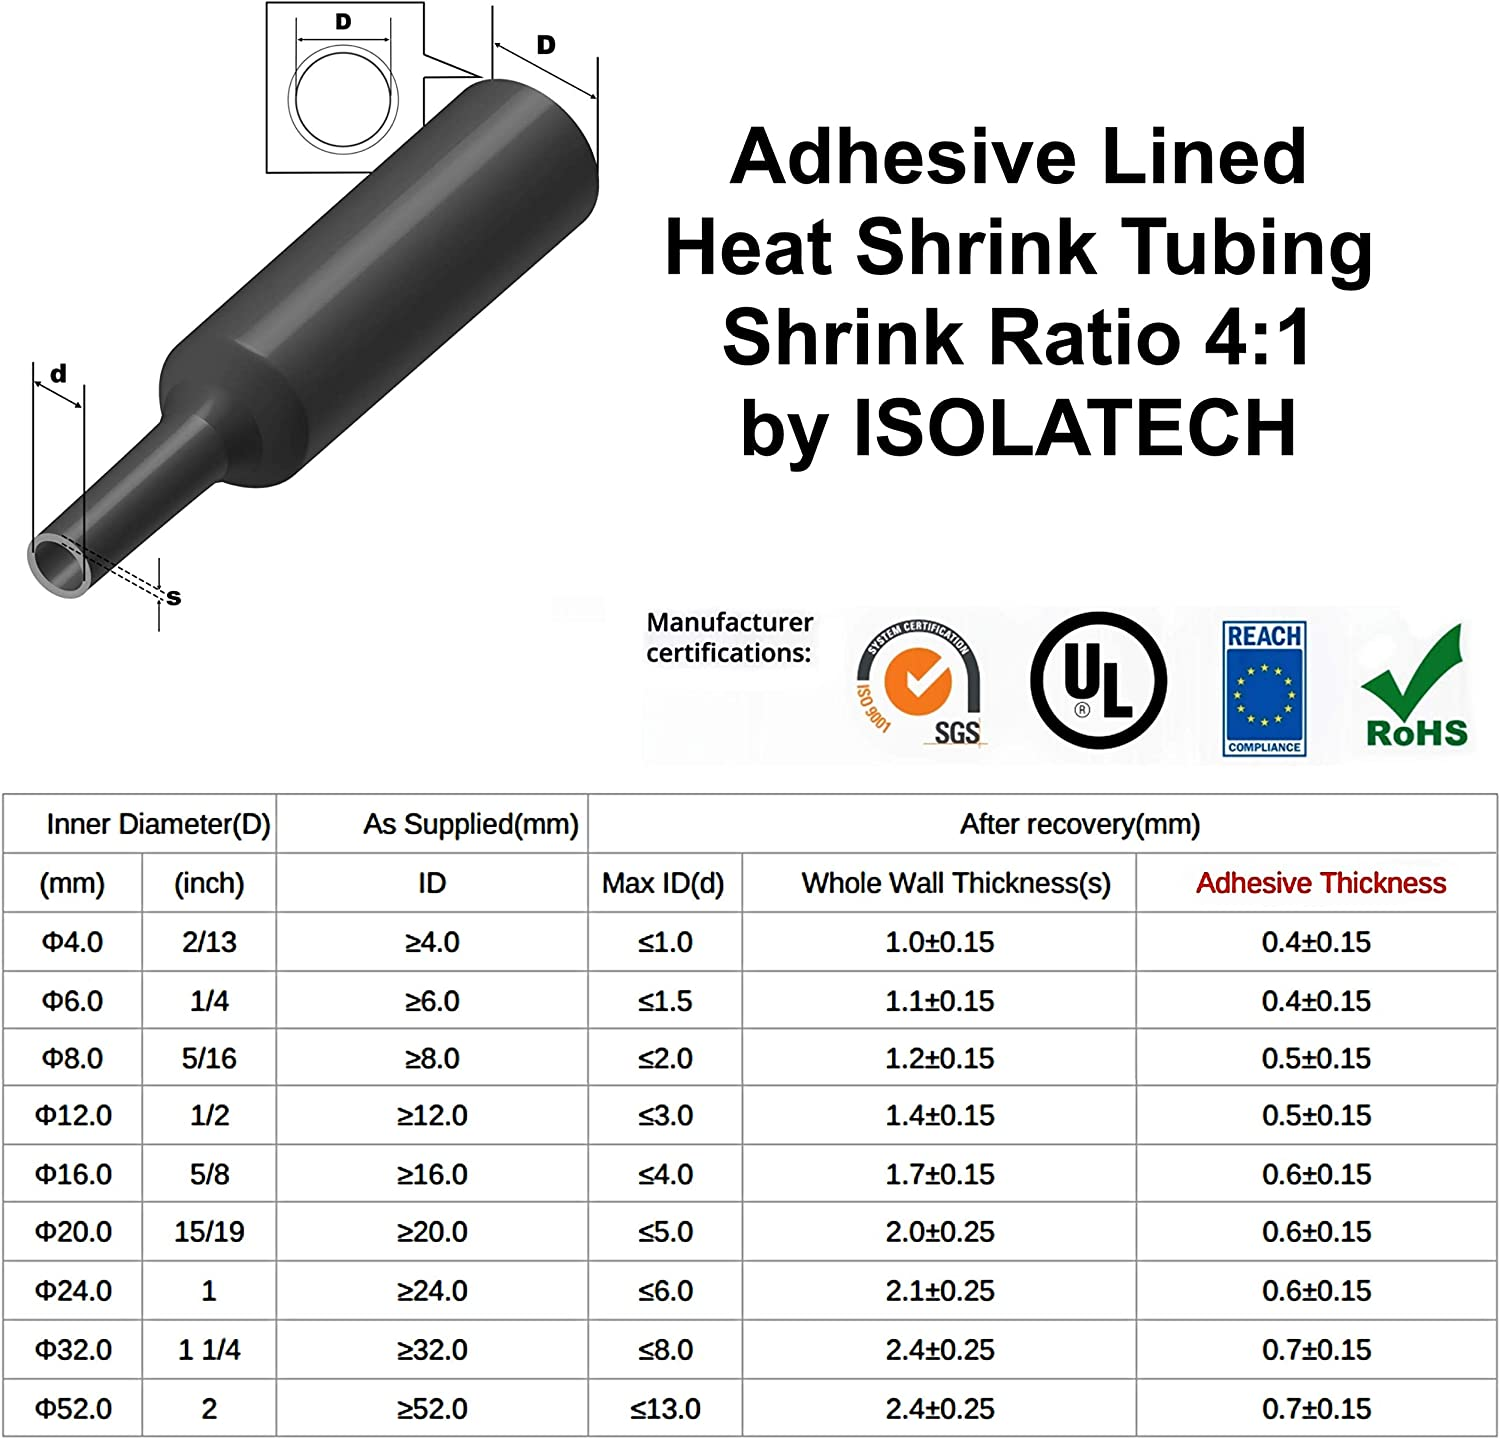 Heat Shrink Tube 4:1 Adhesive Lined Transparent Clear /Ø4mm 1m here Choose from 8 diameters and 6 Lengths by ISOLATECH